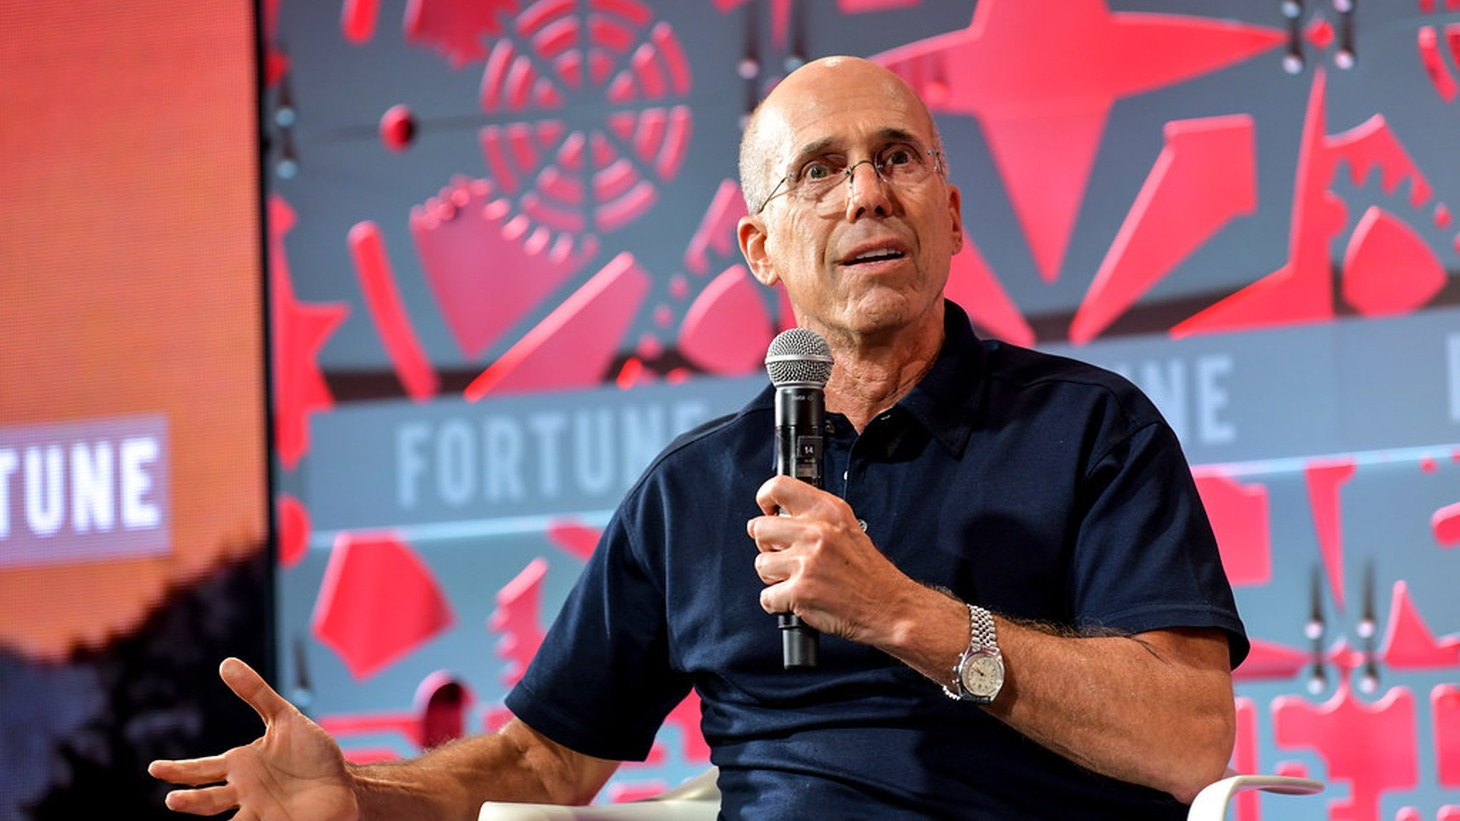 A pandemic wasn't going to stop Jeffrey Katzenberg from launching Quibi.